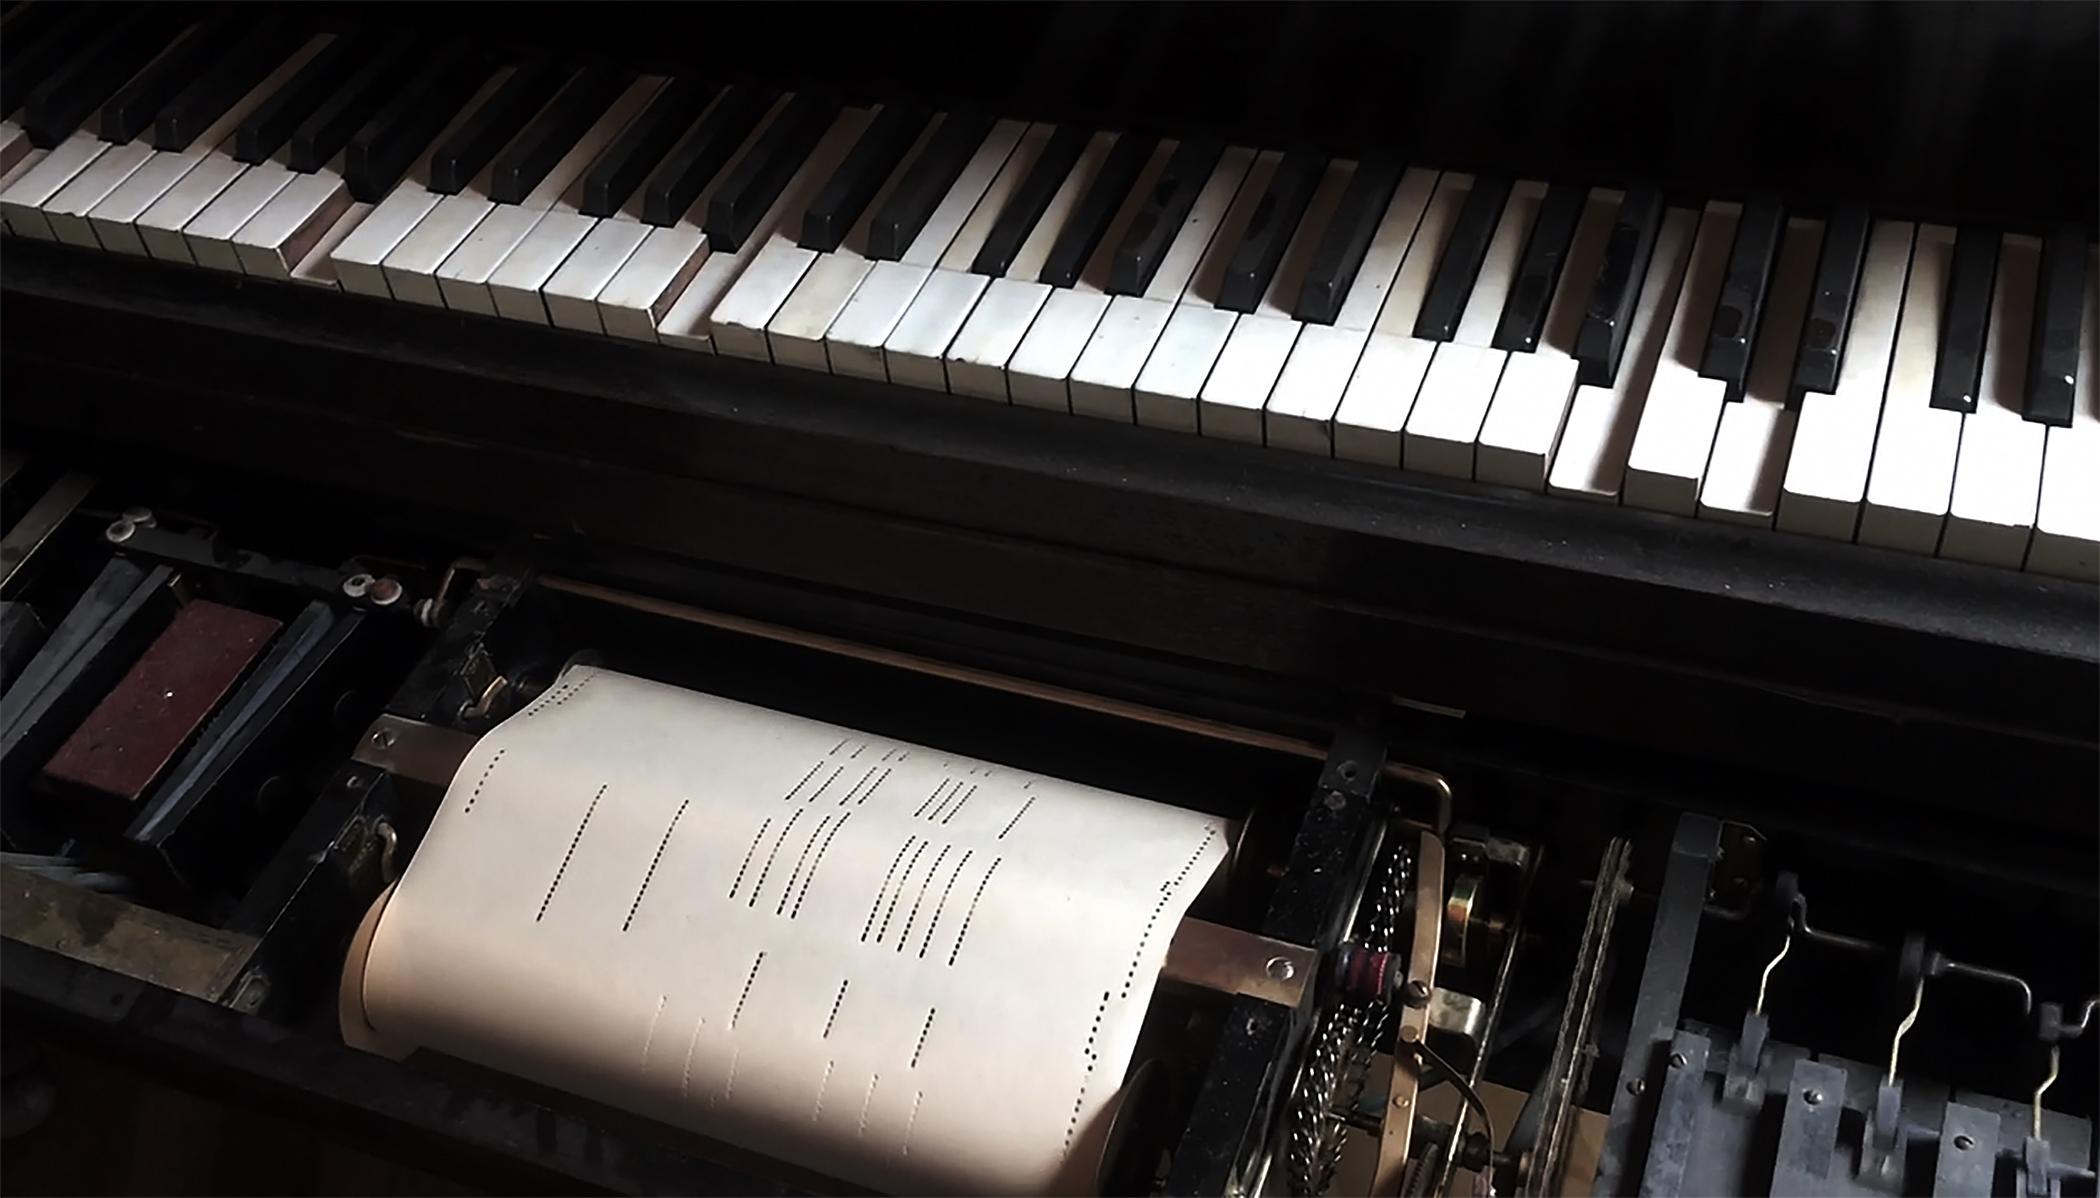 A close-up of a player piano keyboard captures the roll of sheet music mid-song.